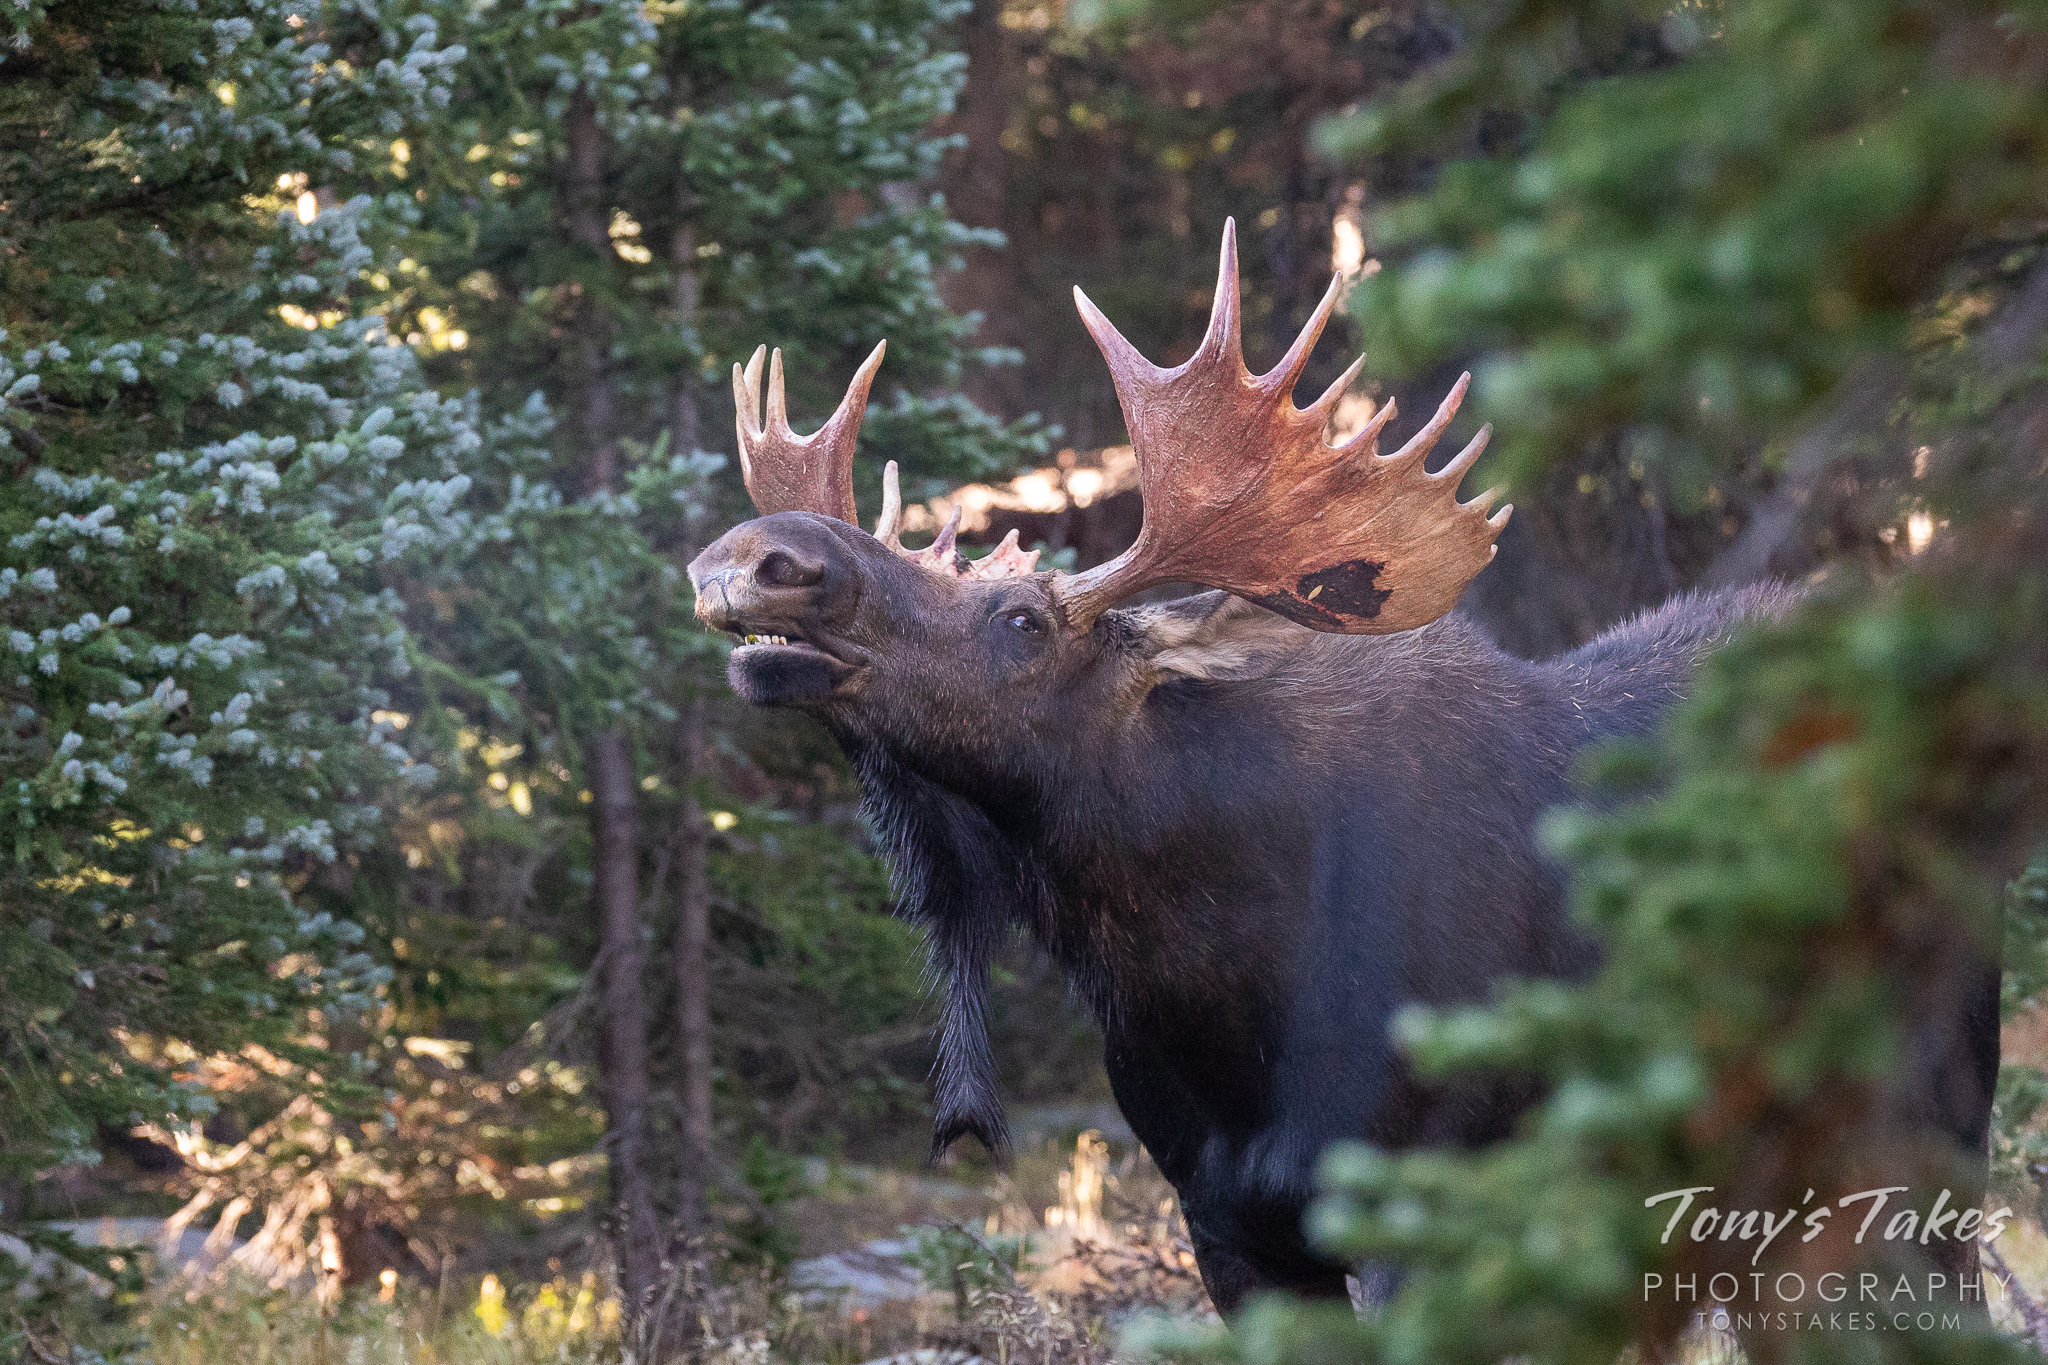 A bull moose takes a big whiff of the air as he looks for a mate. (© Tony's Takes)